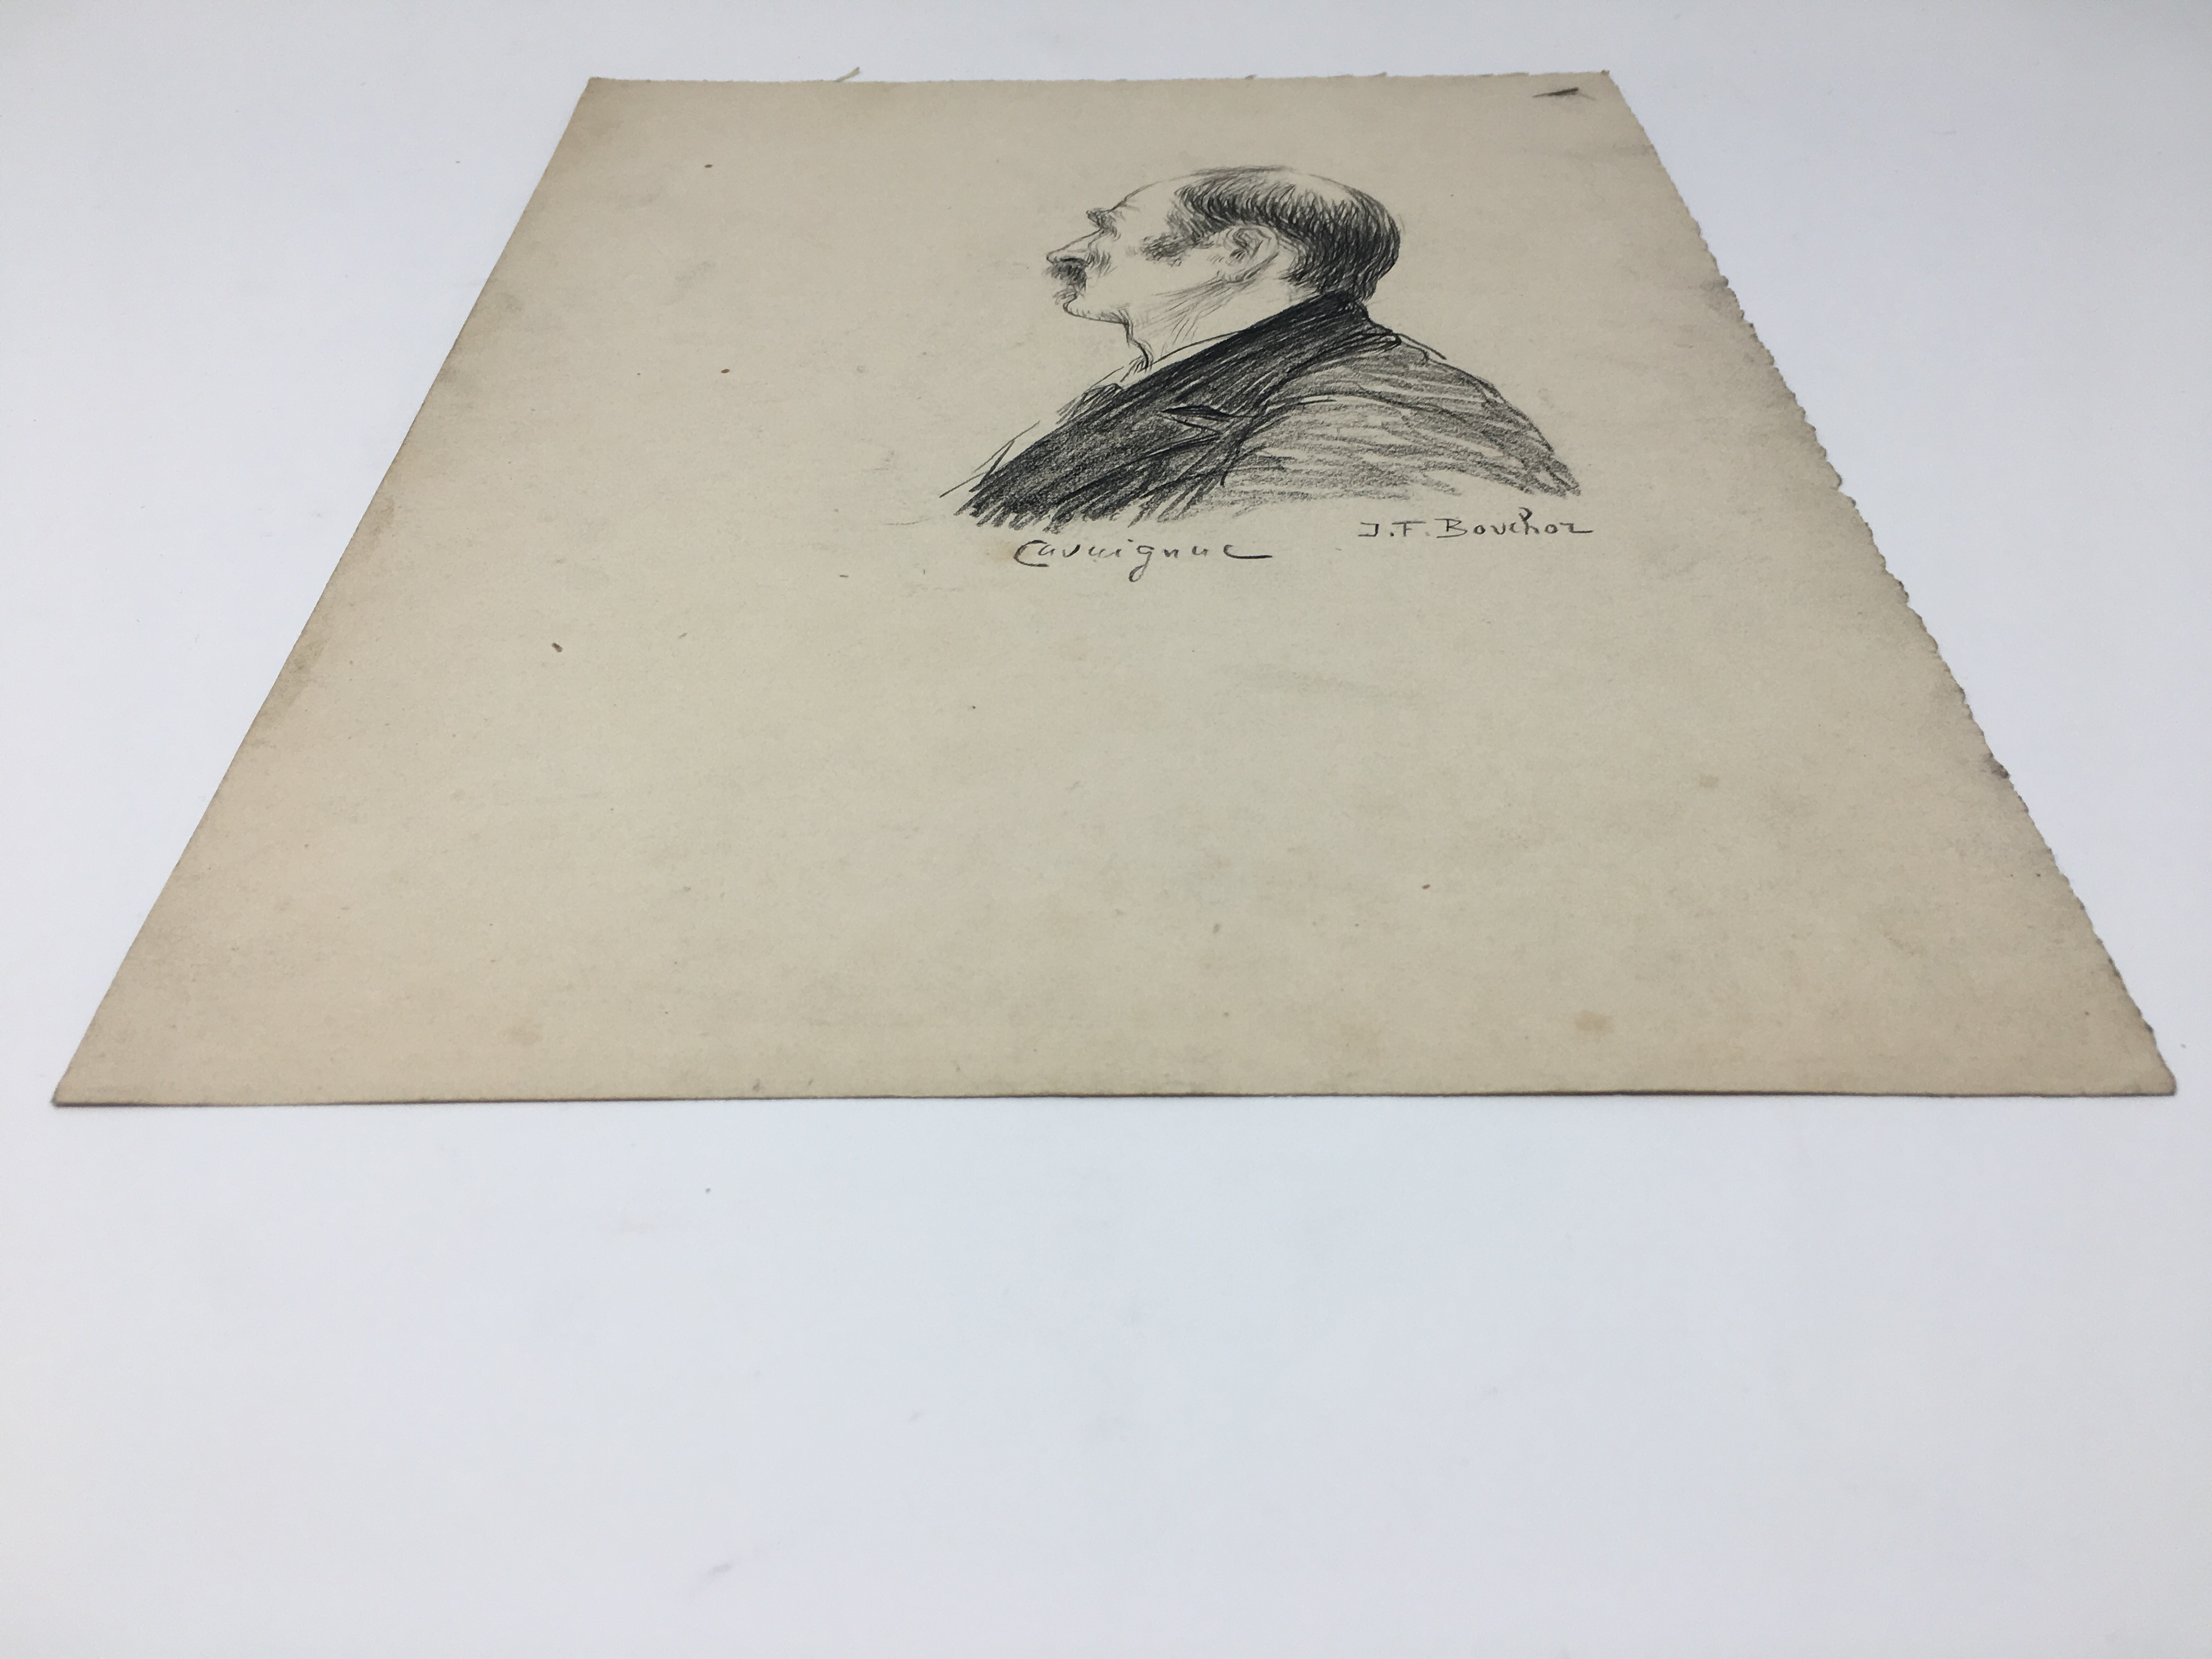 J'Accuse Newspaper, Emile Zola Quote, Signed Dreyfus Portrait, Rare Trial Drawings & Schwartzkoppen - Image 45 of 74